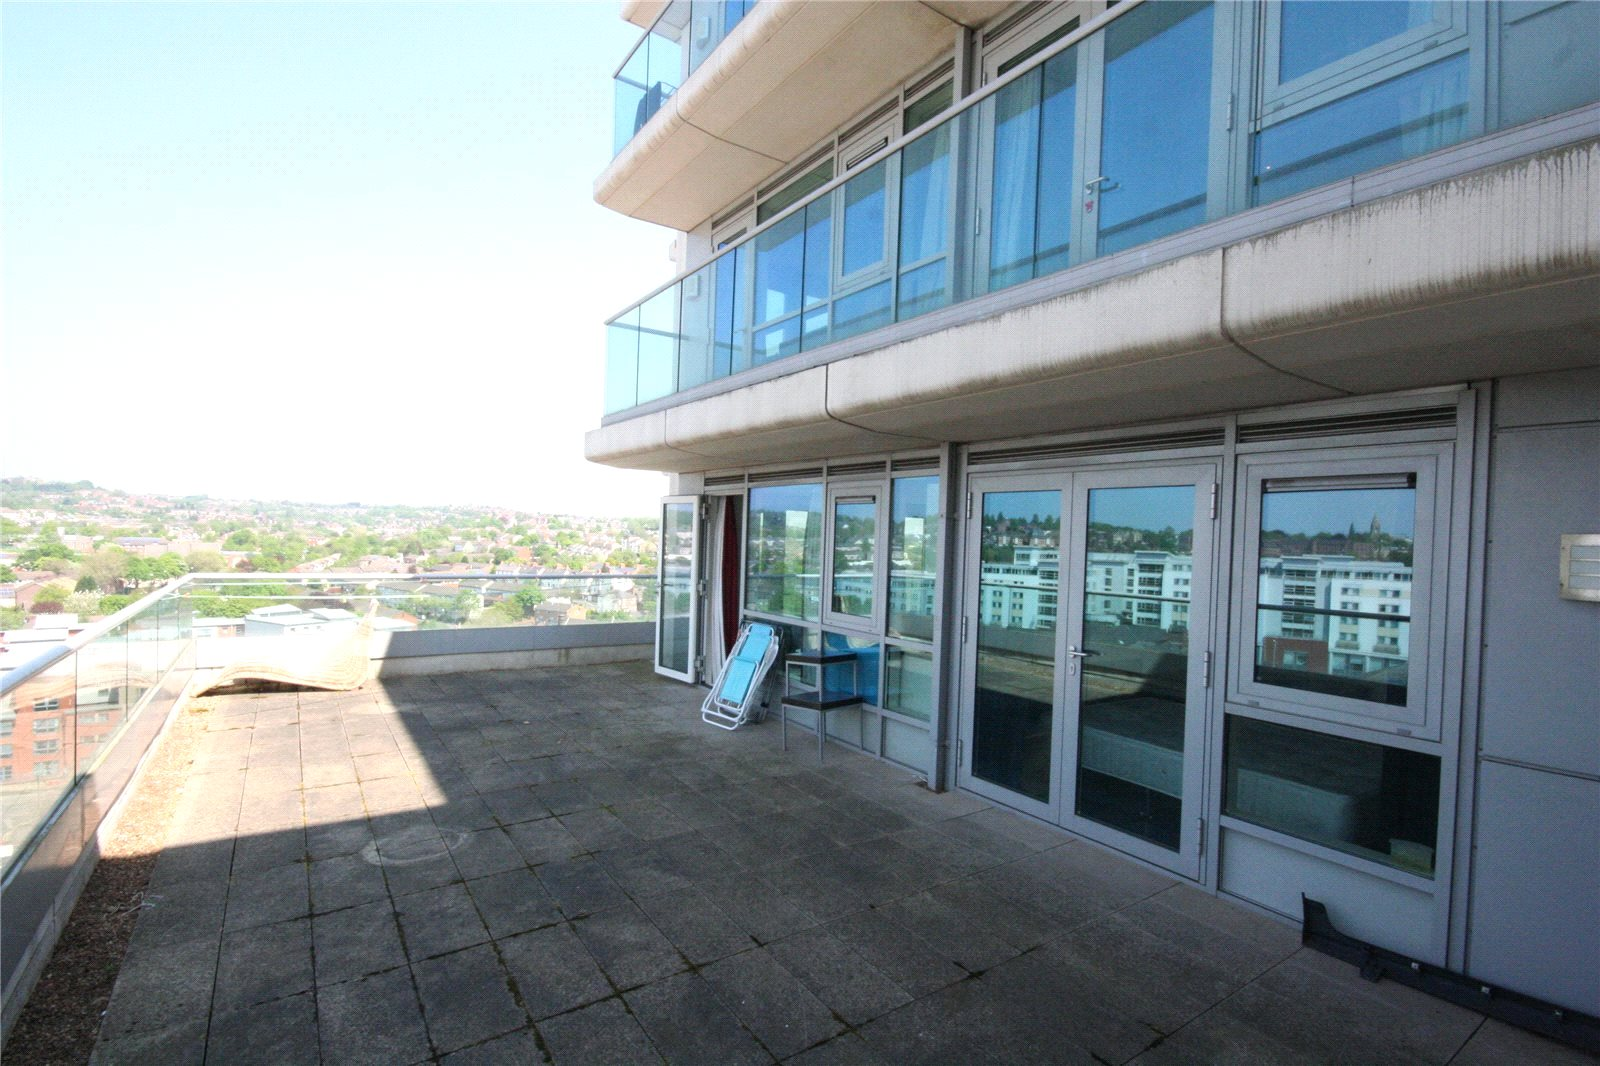 Whitegates Beeston 1 Bedroom Flat For Sale In Litmus Building City Centre Nottingham Ng1